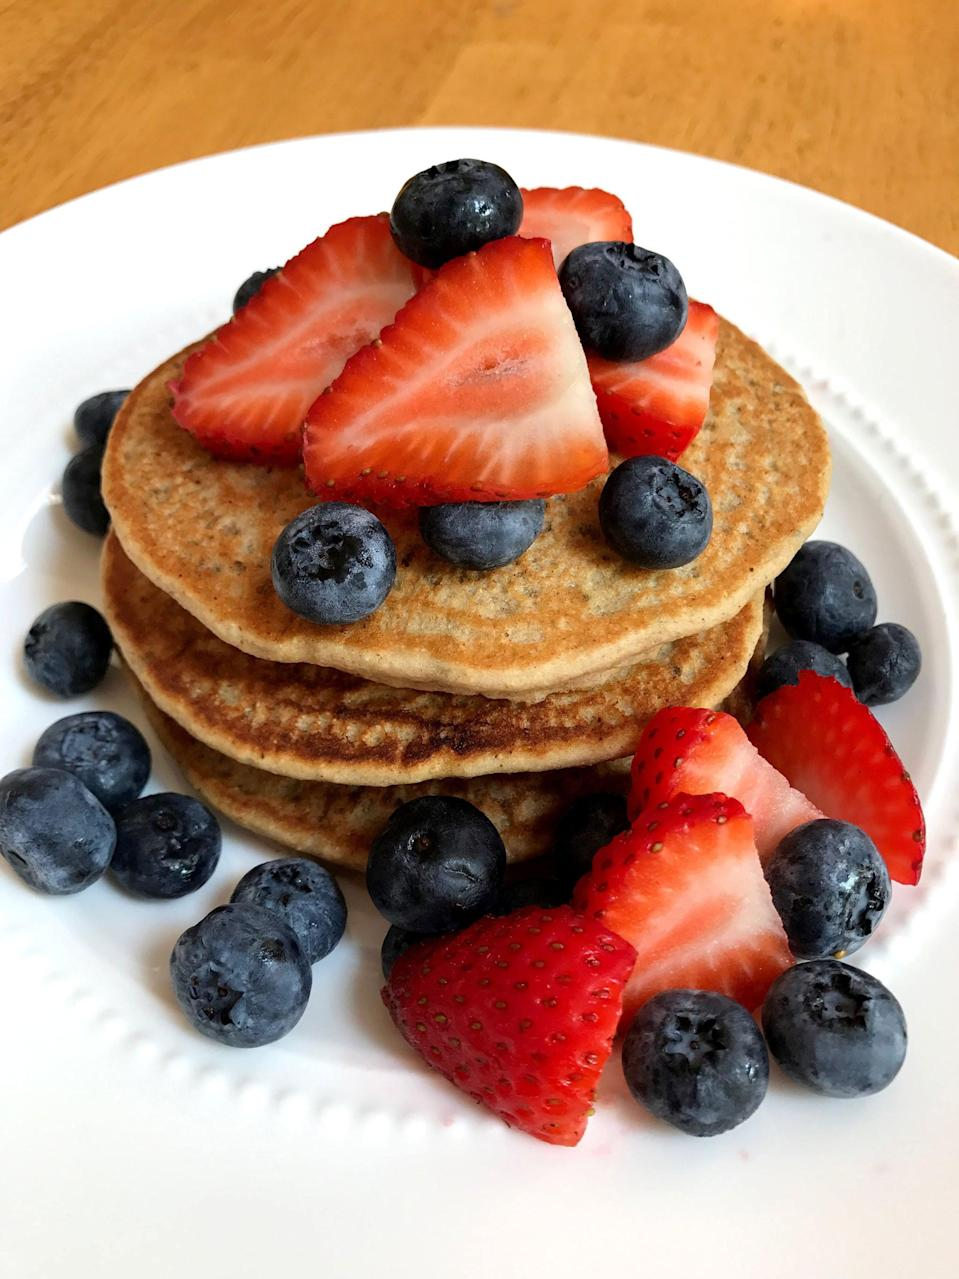 "<p>These fluffy pancakes are made with whole wheat flour, protein powder, and chia seeds. </p> <p><strong>Calories:</strong> 104 per pancake<br> <strong>Protein:</strong> 5.1 grams</p> <p><strong>Get the recipe:</strong> <a href=""https://www.popsugar.com/fitness/Vegan-Protein-Pancakes-44039335"" class=""link rapid-noclick-resp"" rel=""nofollow noopener"" target=""_blank"" data-ylk=""slk:vegan protein pancakes"">vegan protein pancakes</a></p>"